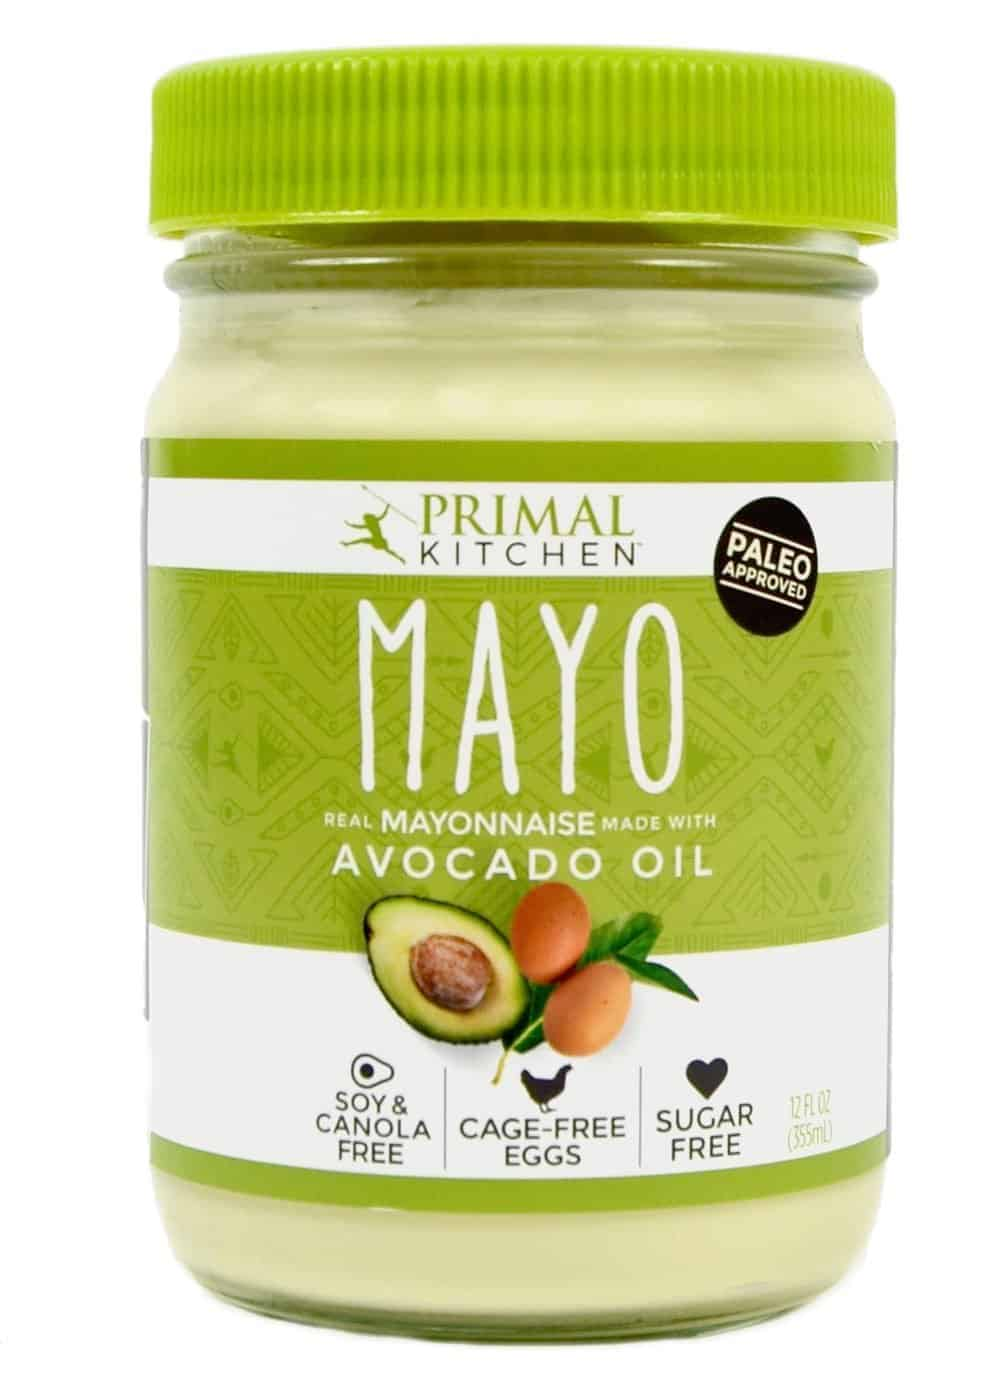 The Best Homemade Mayonnaise Ever, healthy mayo, creamy mayo for tuna salad, ham salad, chicken salad, yellow sauce, homemade blender sandwich spread, chemical free, additive free, Primal Kitchen Paleo Approved Avocado Oil Mayo